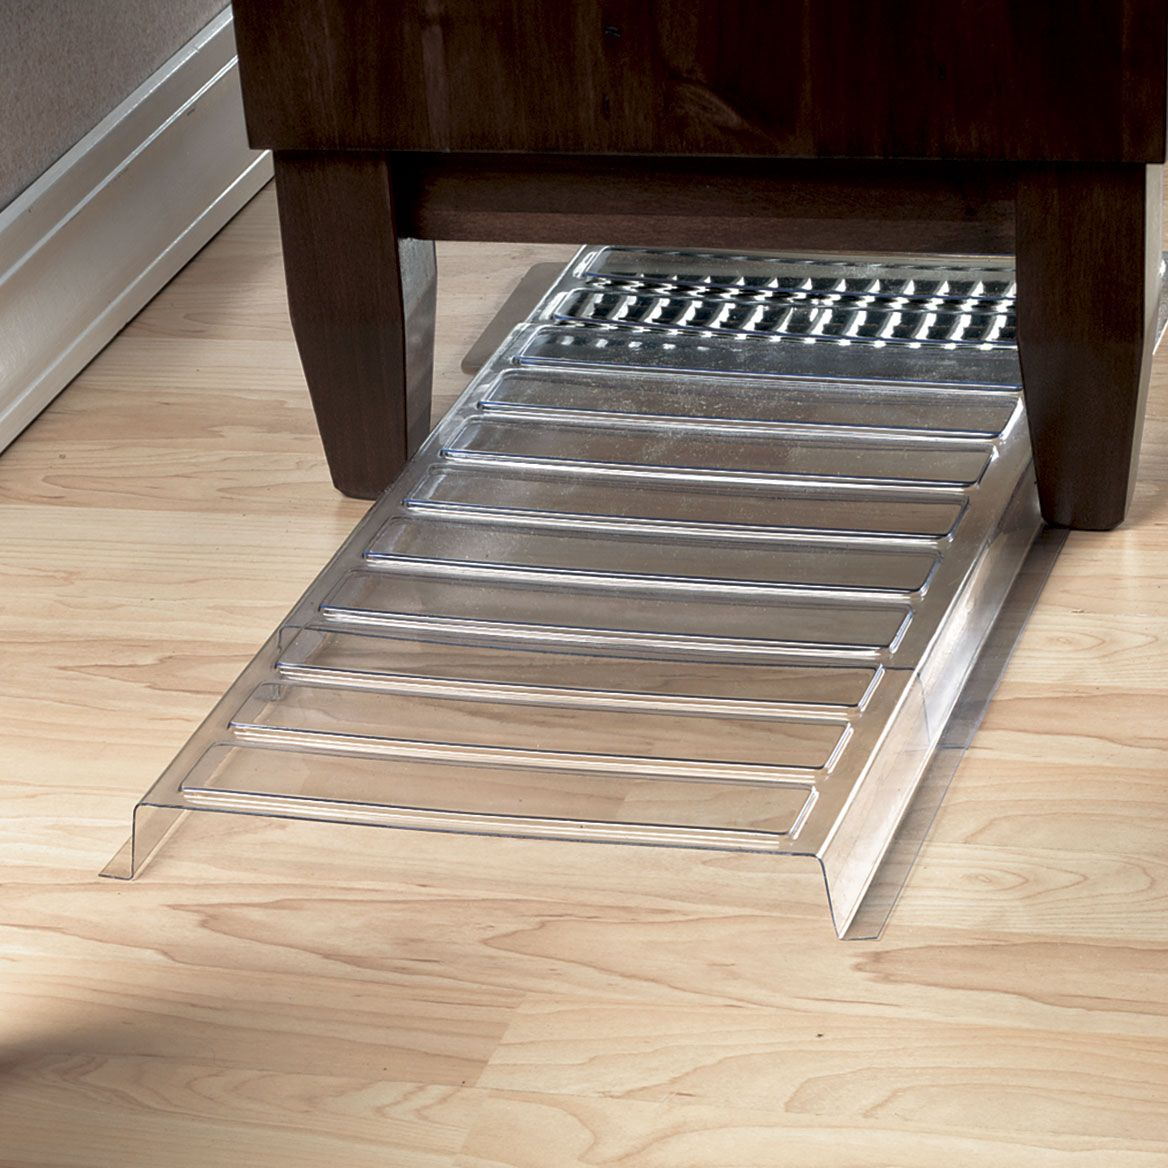 Heating Vent Extender in 2020 Vent extender, Flooring